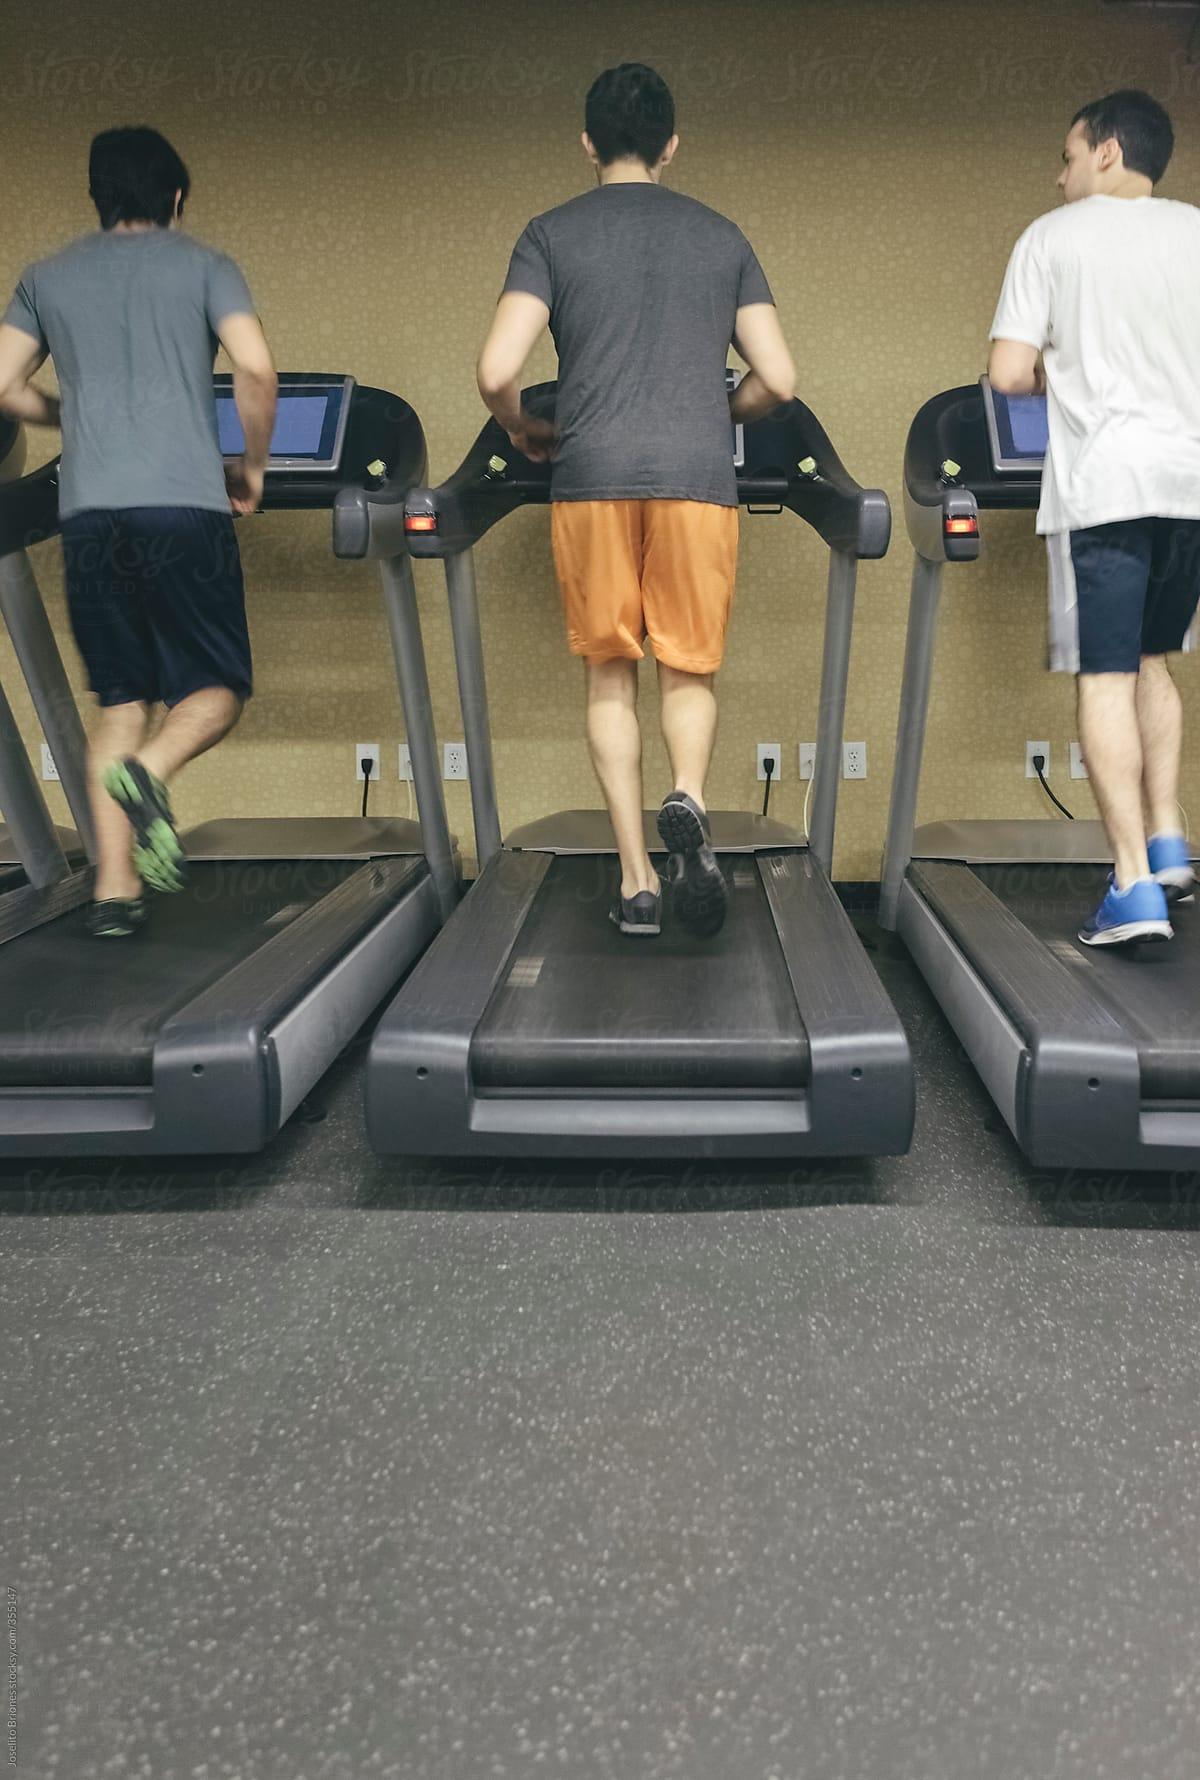 Latino friends and roommates running on threadmill in gym for